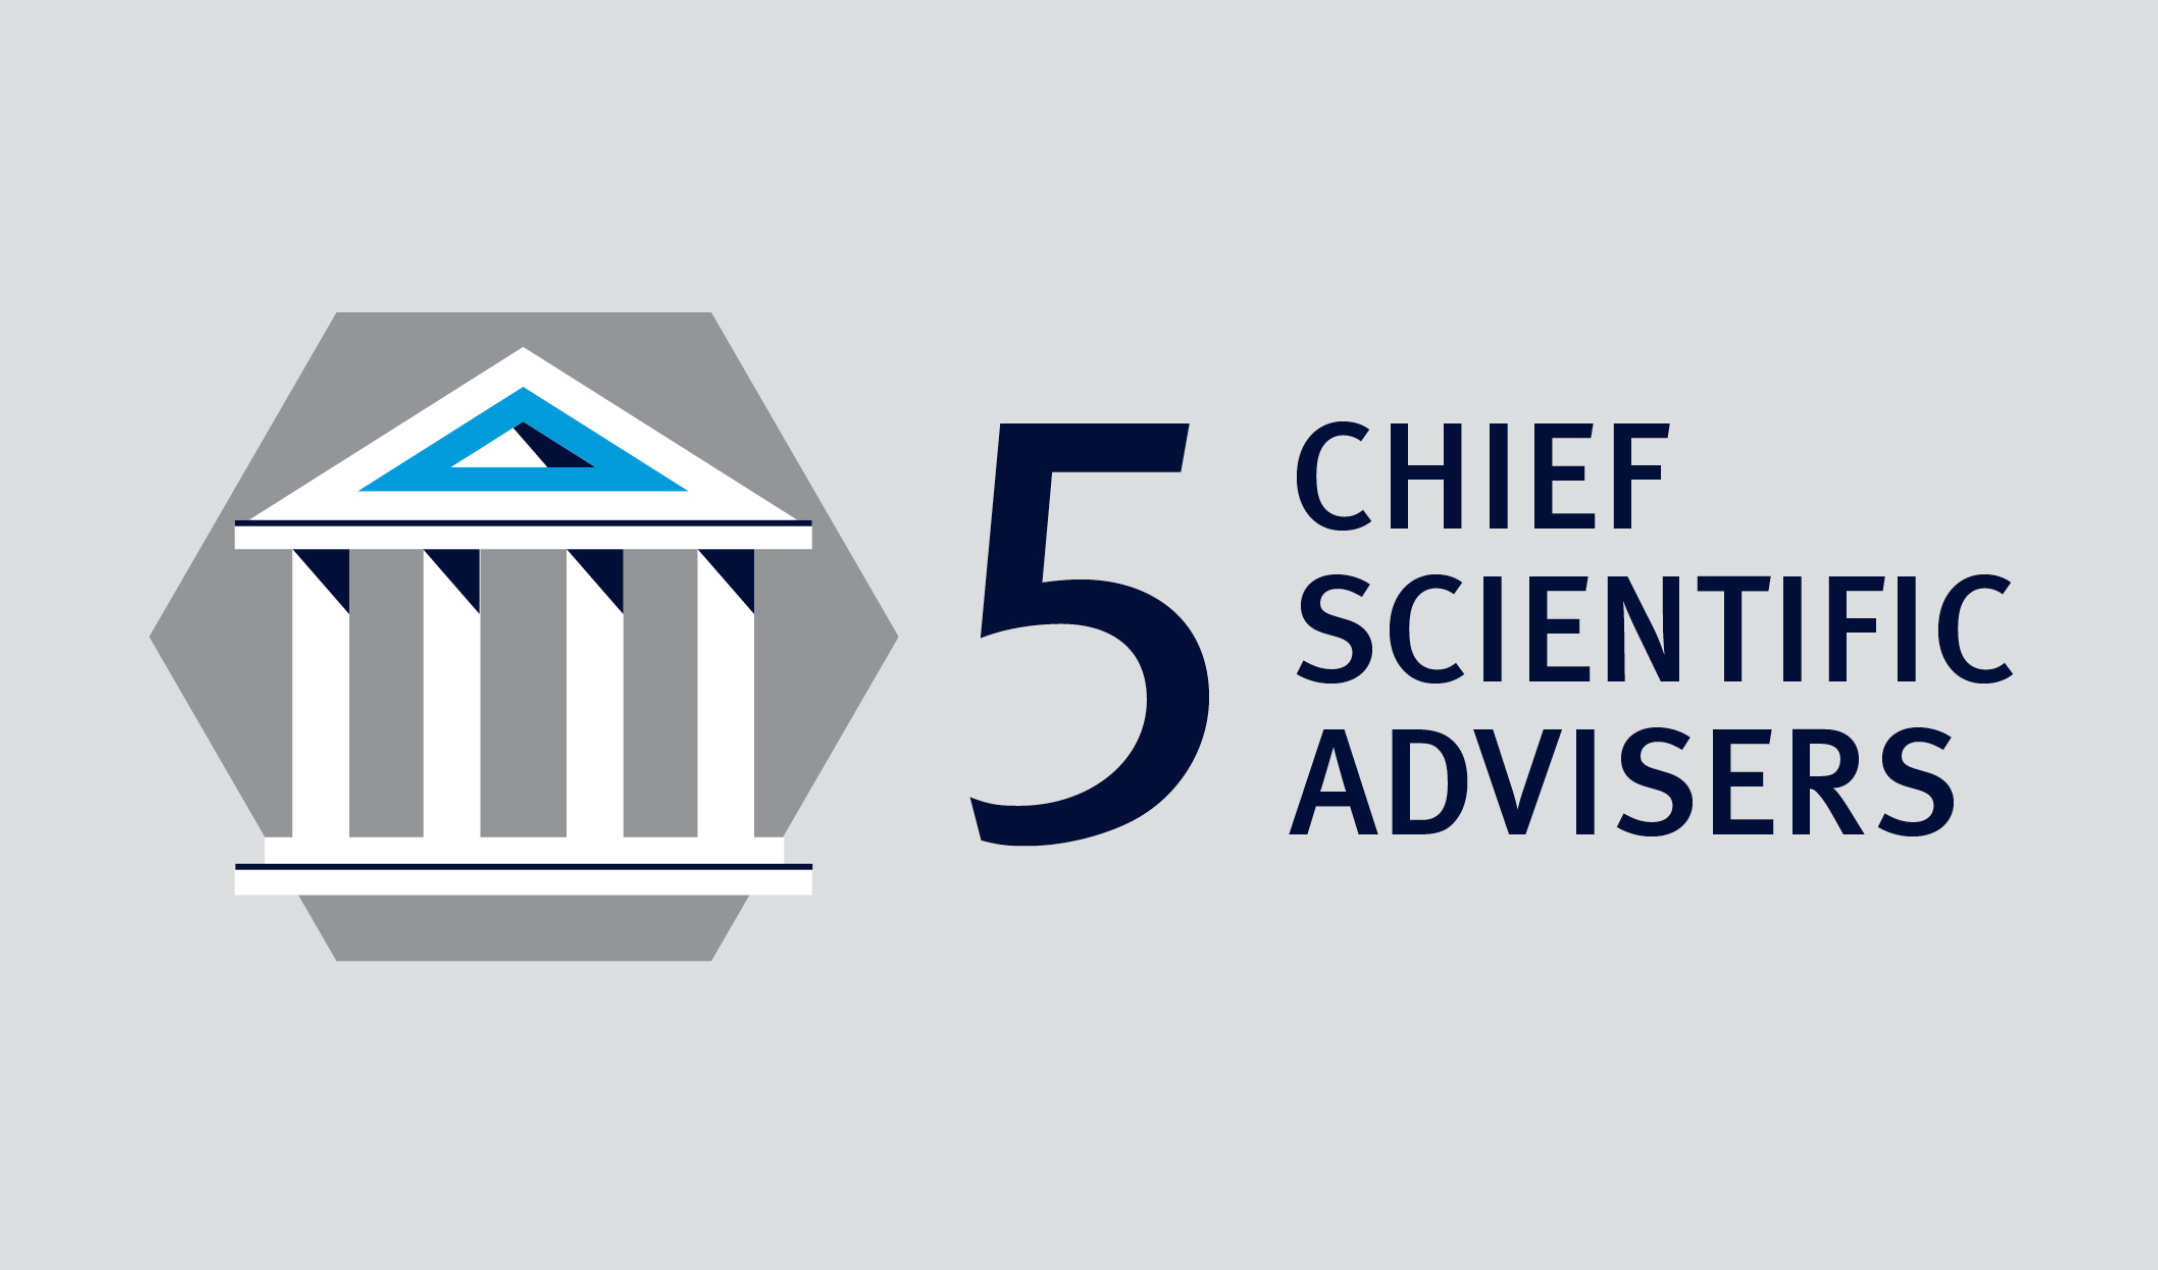 There are 5 Chief Scientific Advisors to government departments who have worked or studied at Imperial